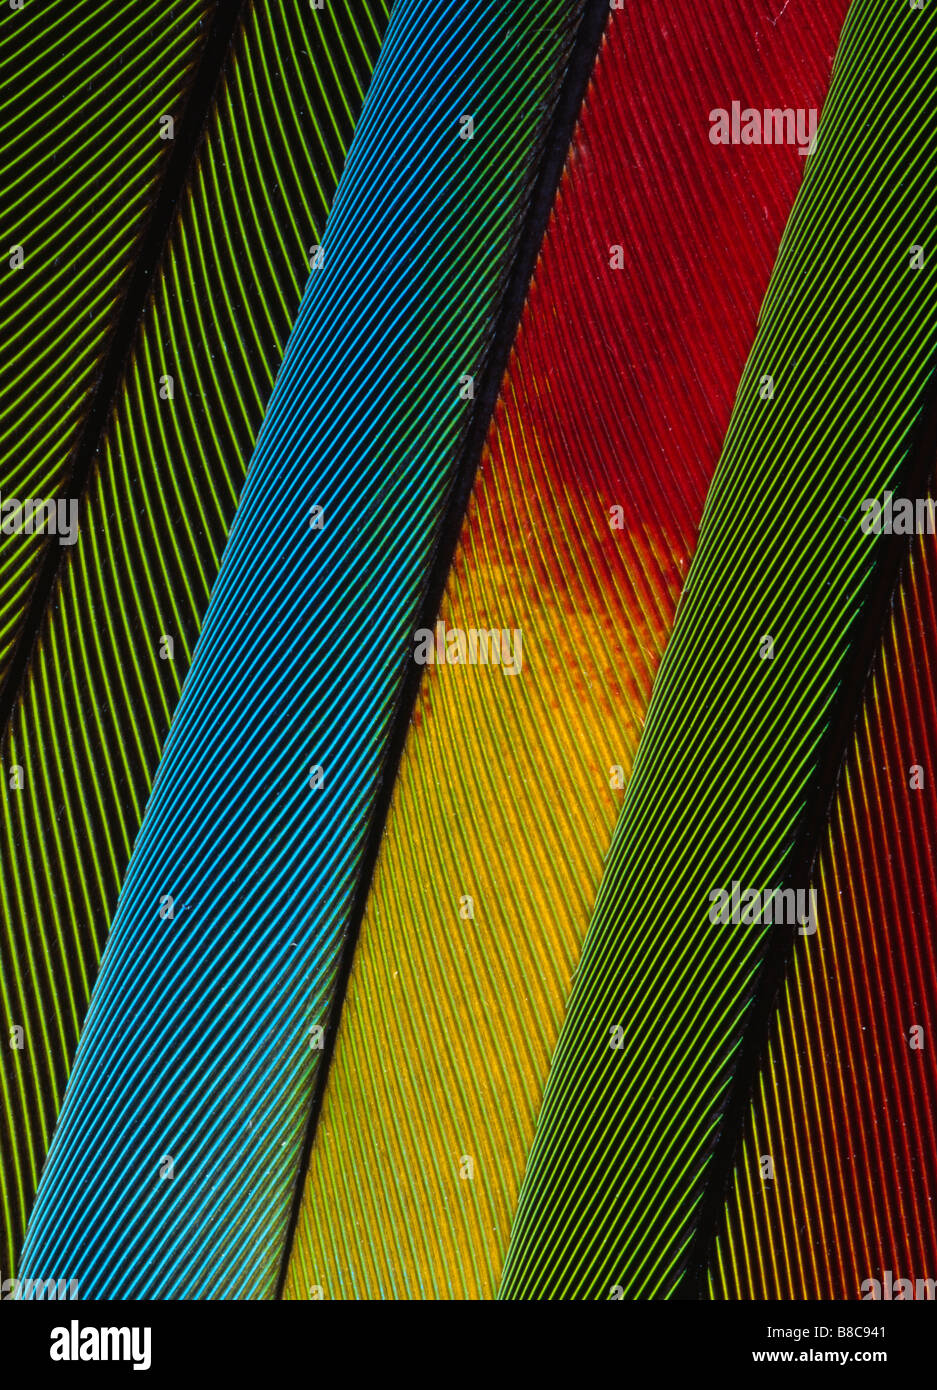 PARROT FEATHERS - Stock Image